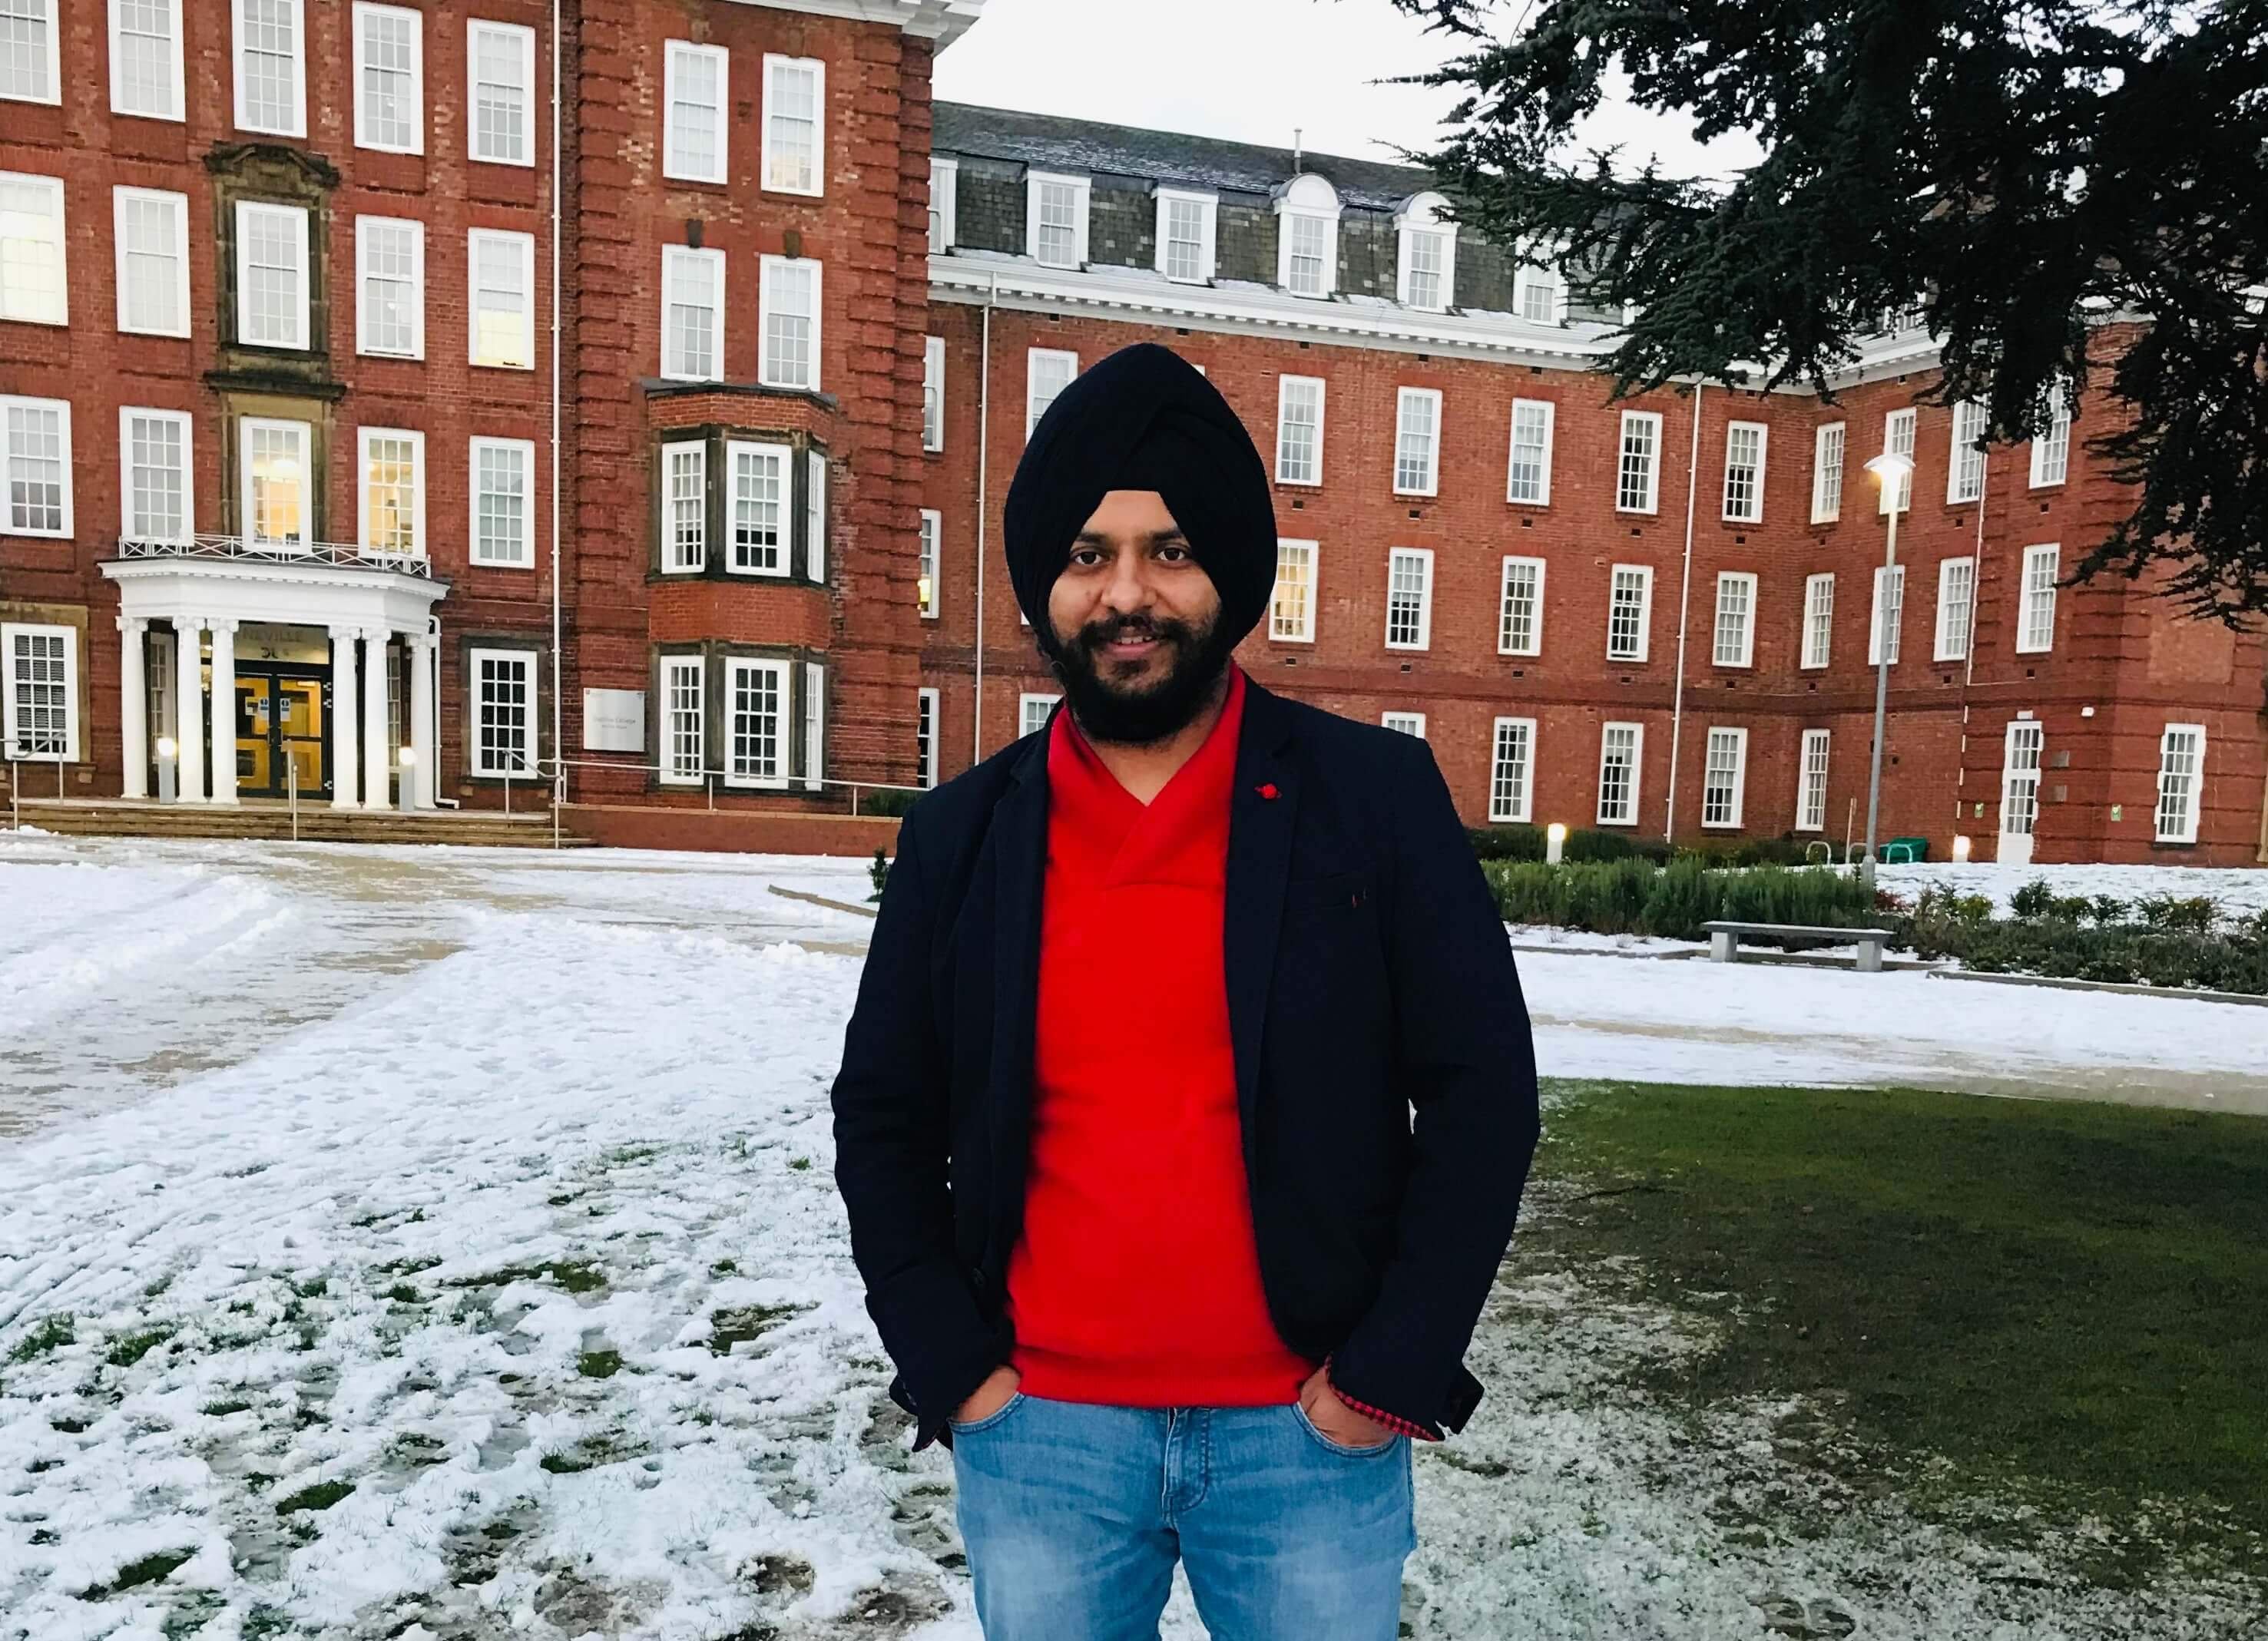 From Amritsar to England: A 'life-changing' MBA despite COVID-19